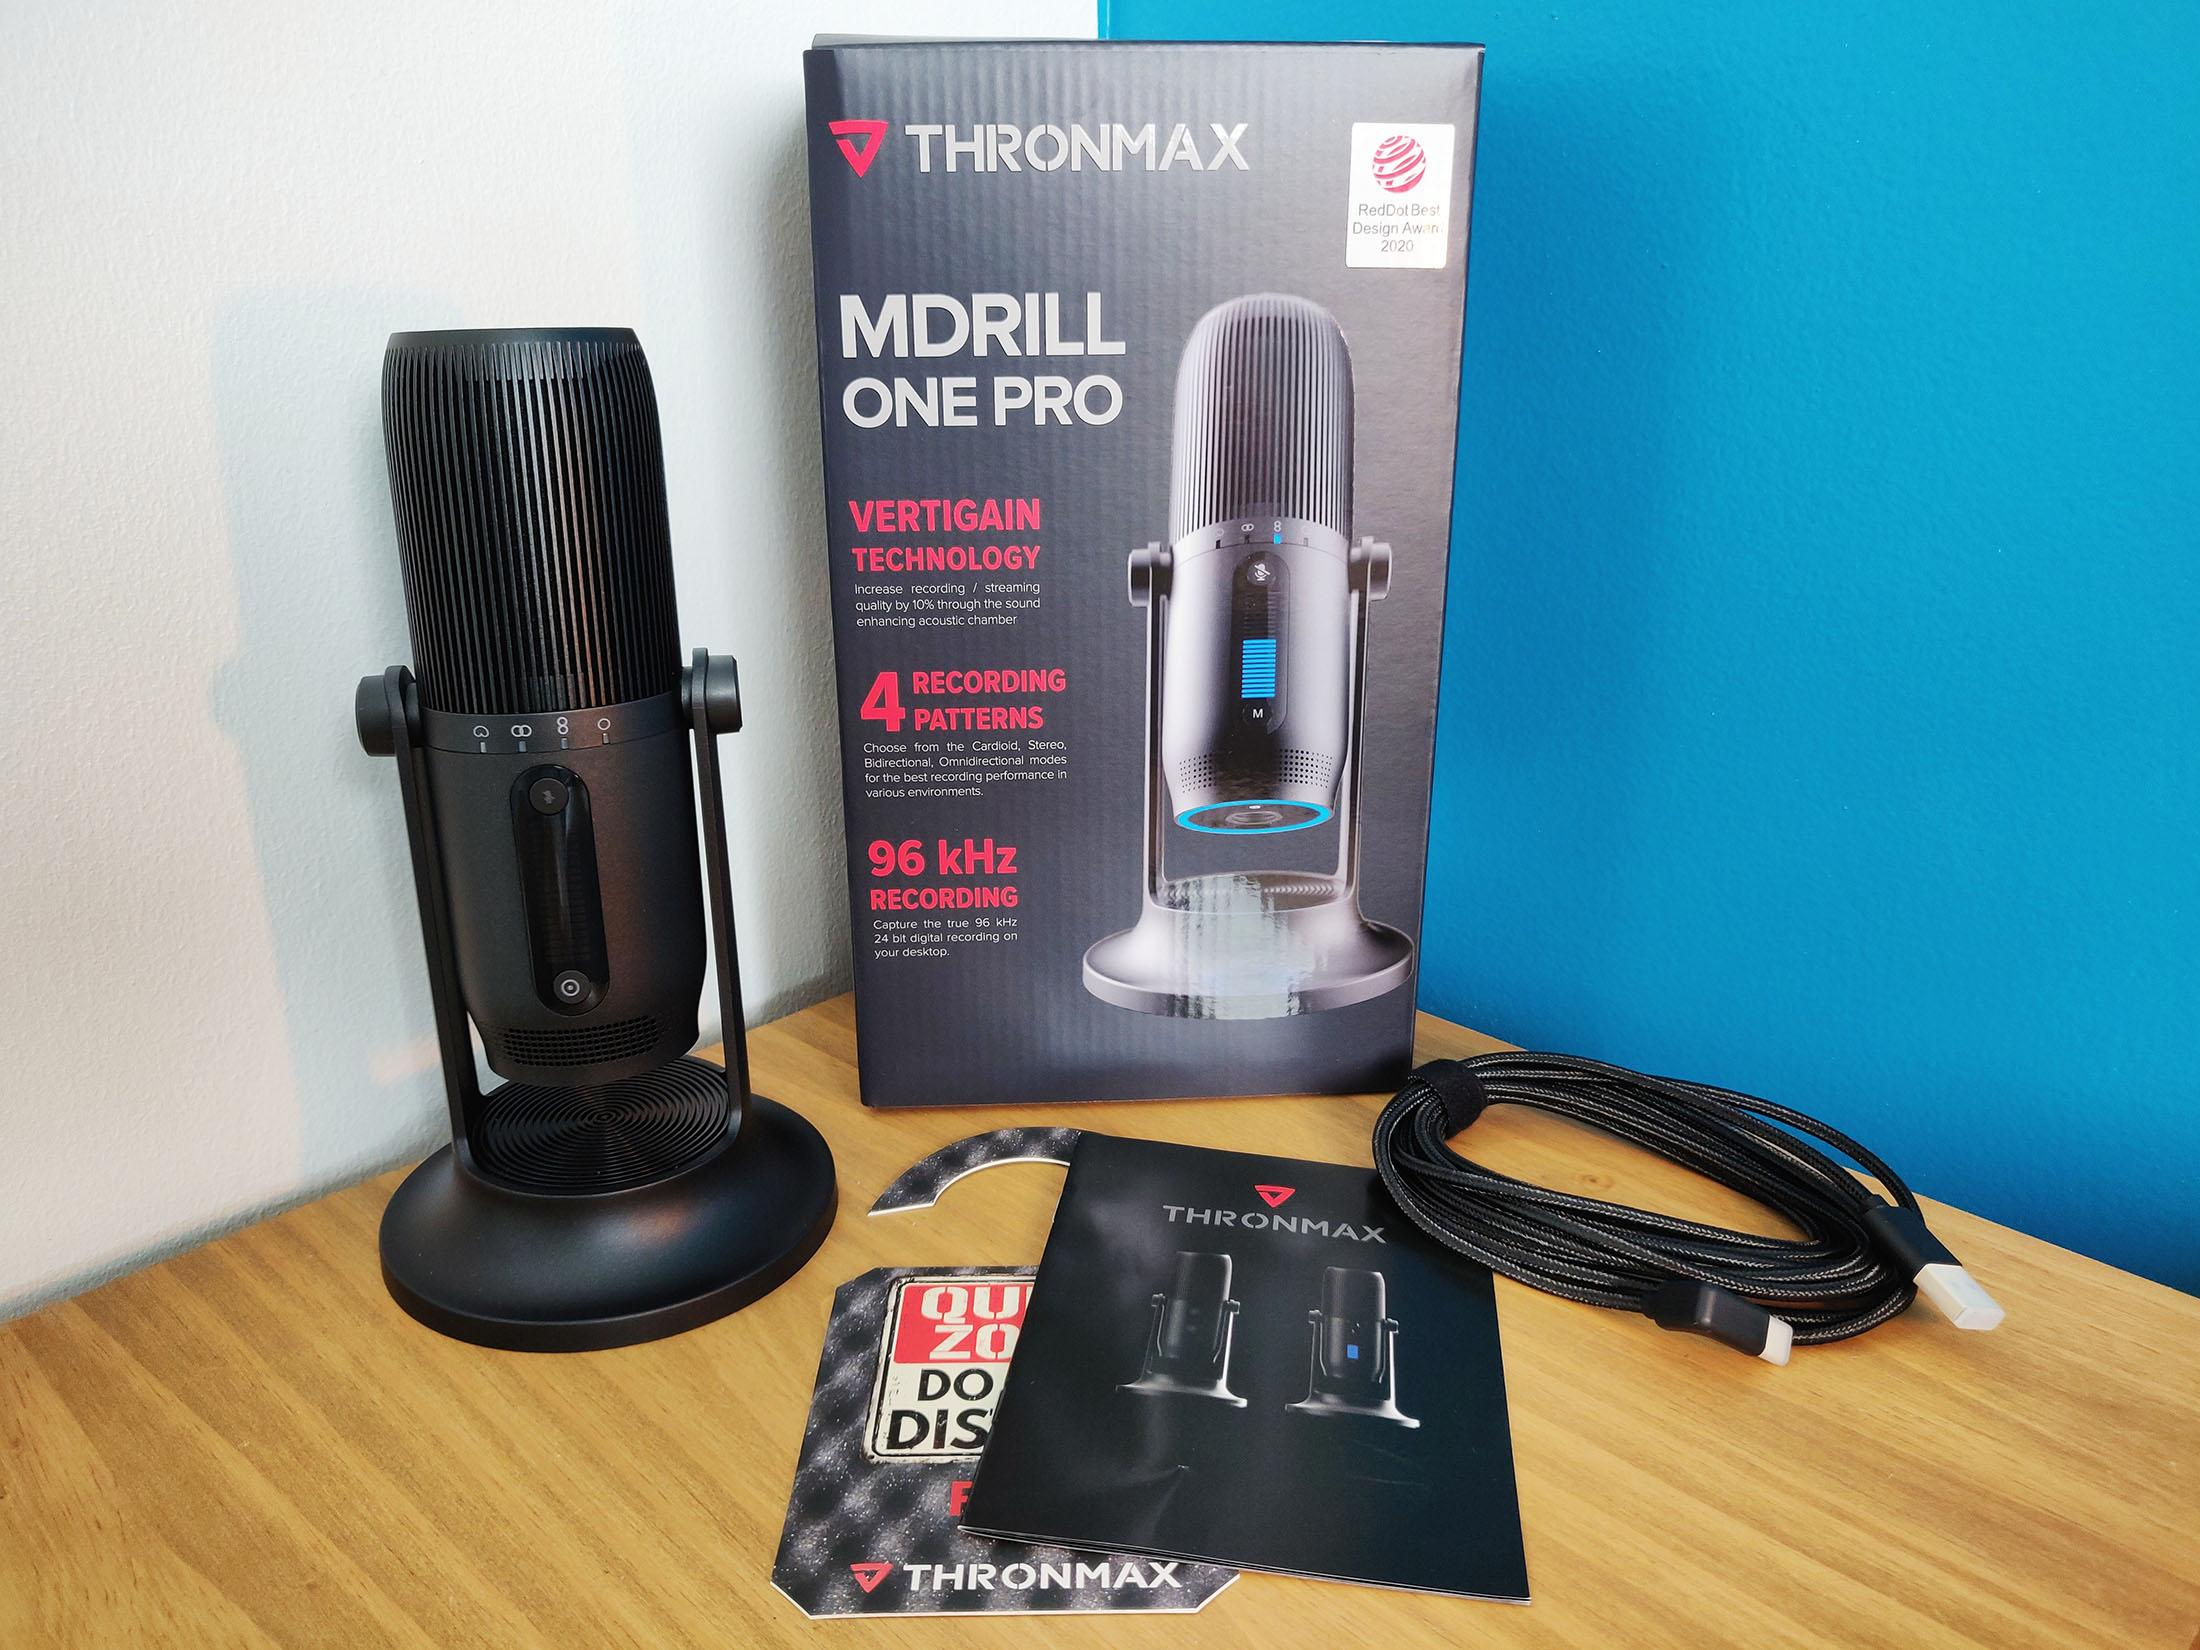 Thronmax Mdrill One Pro Test Bundle